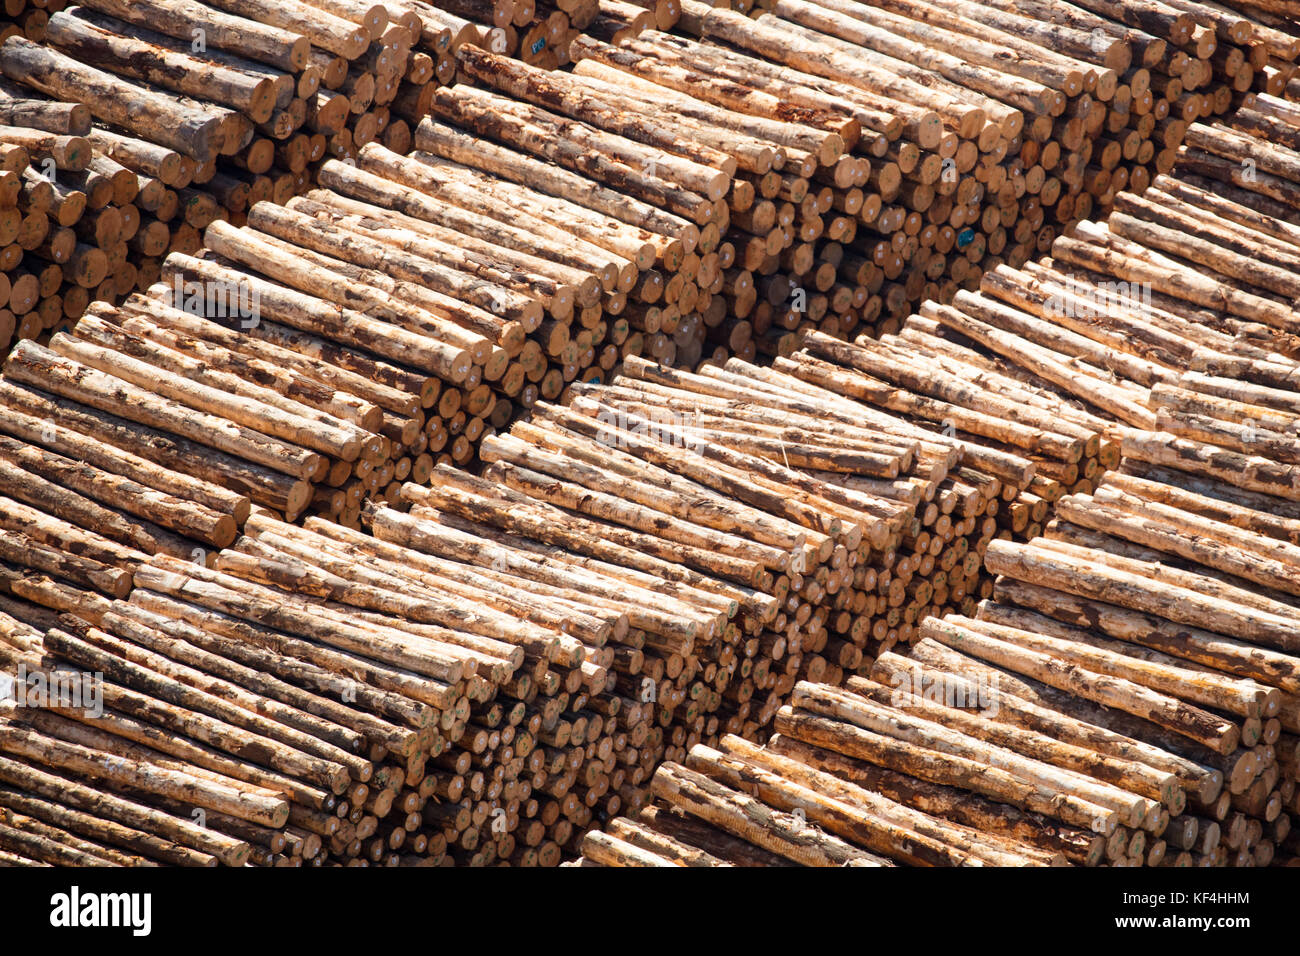 Log Piles For Export - Stock Image